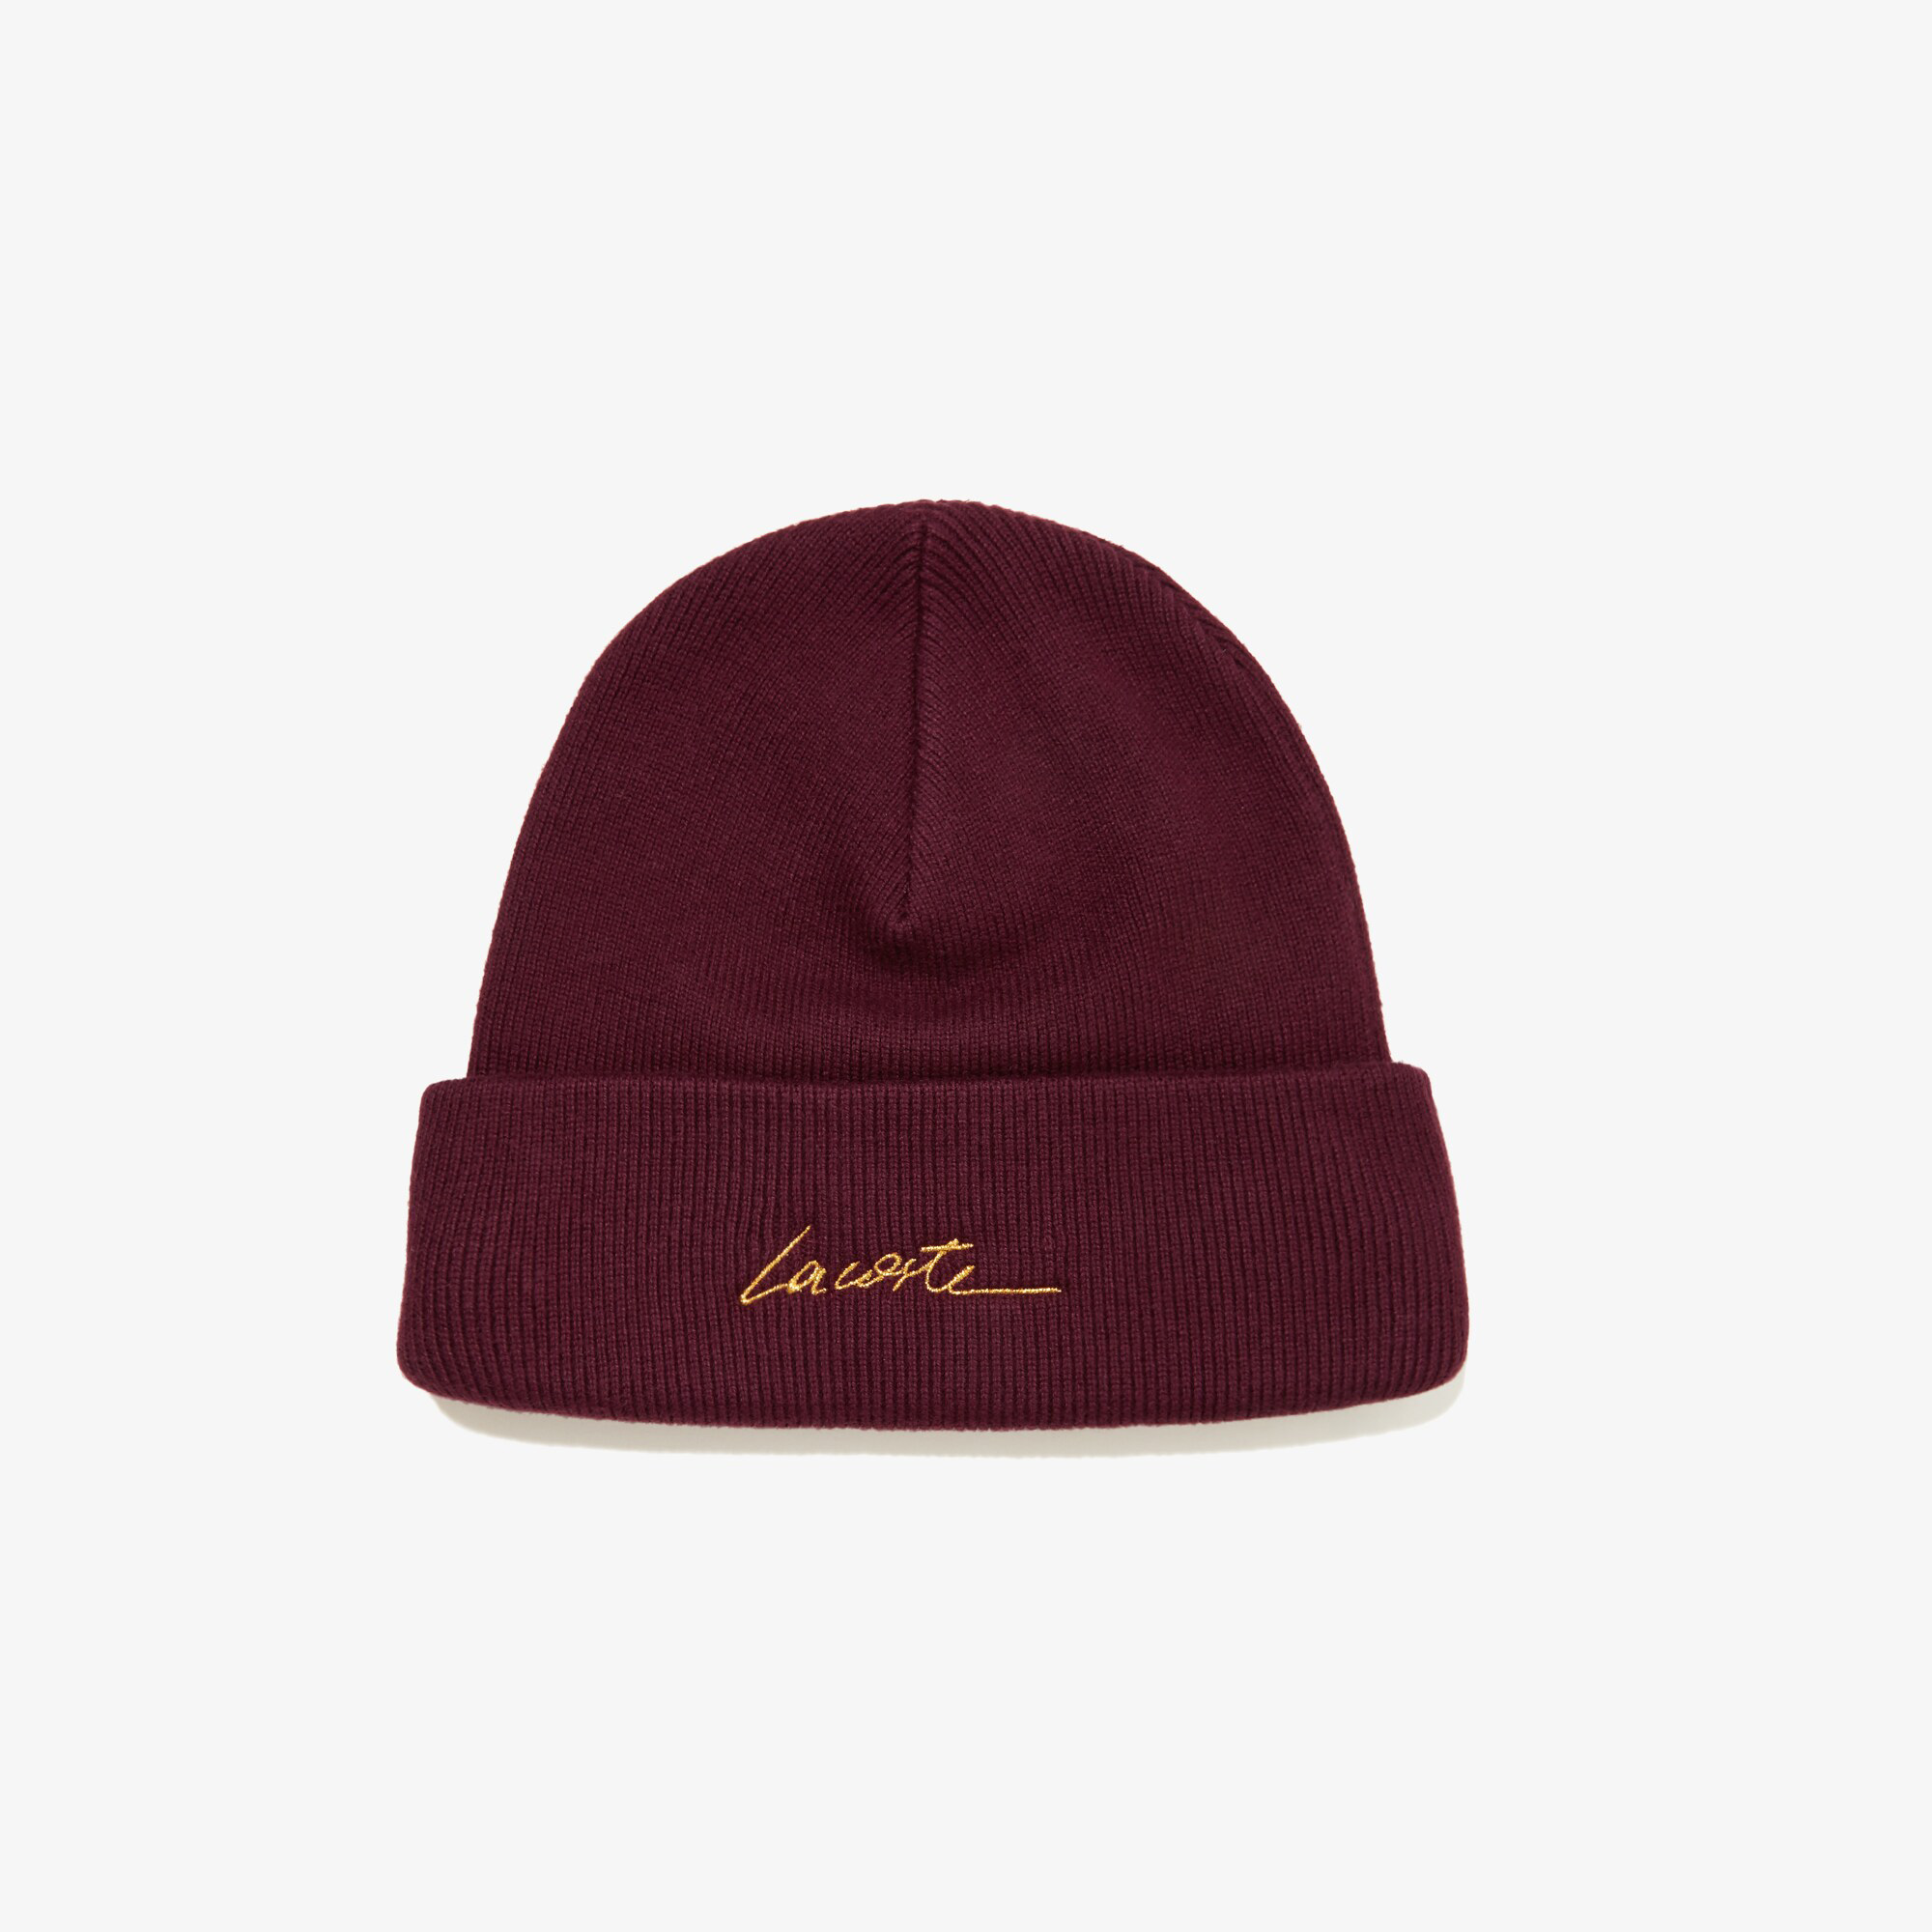 Lacoste L!VE Unisex Signature Embroidered Cashmere And Cotton Beanie